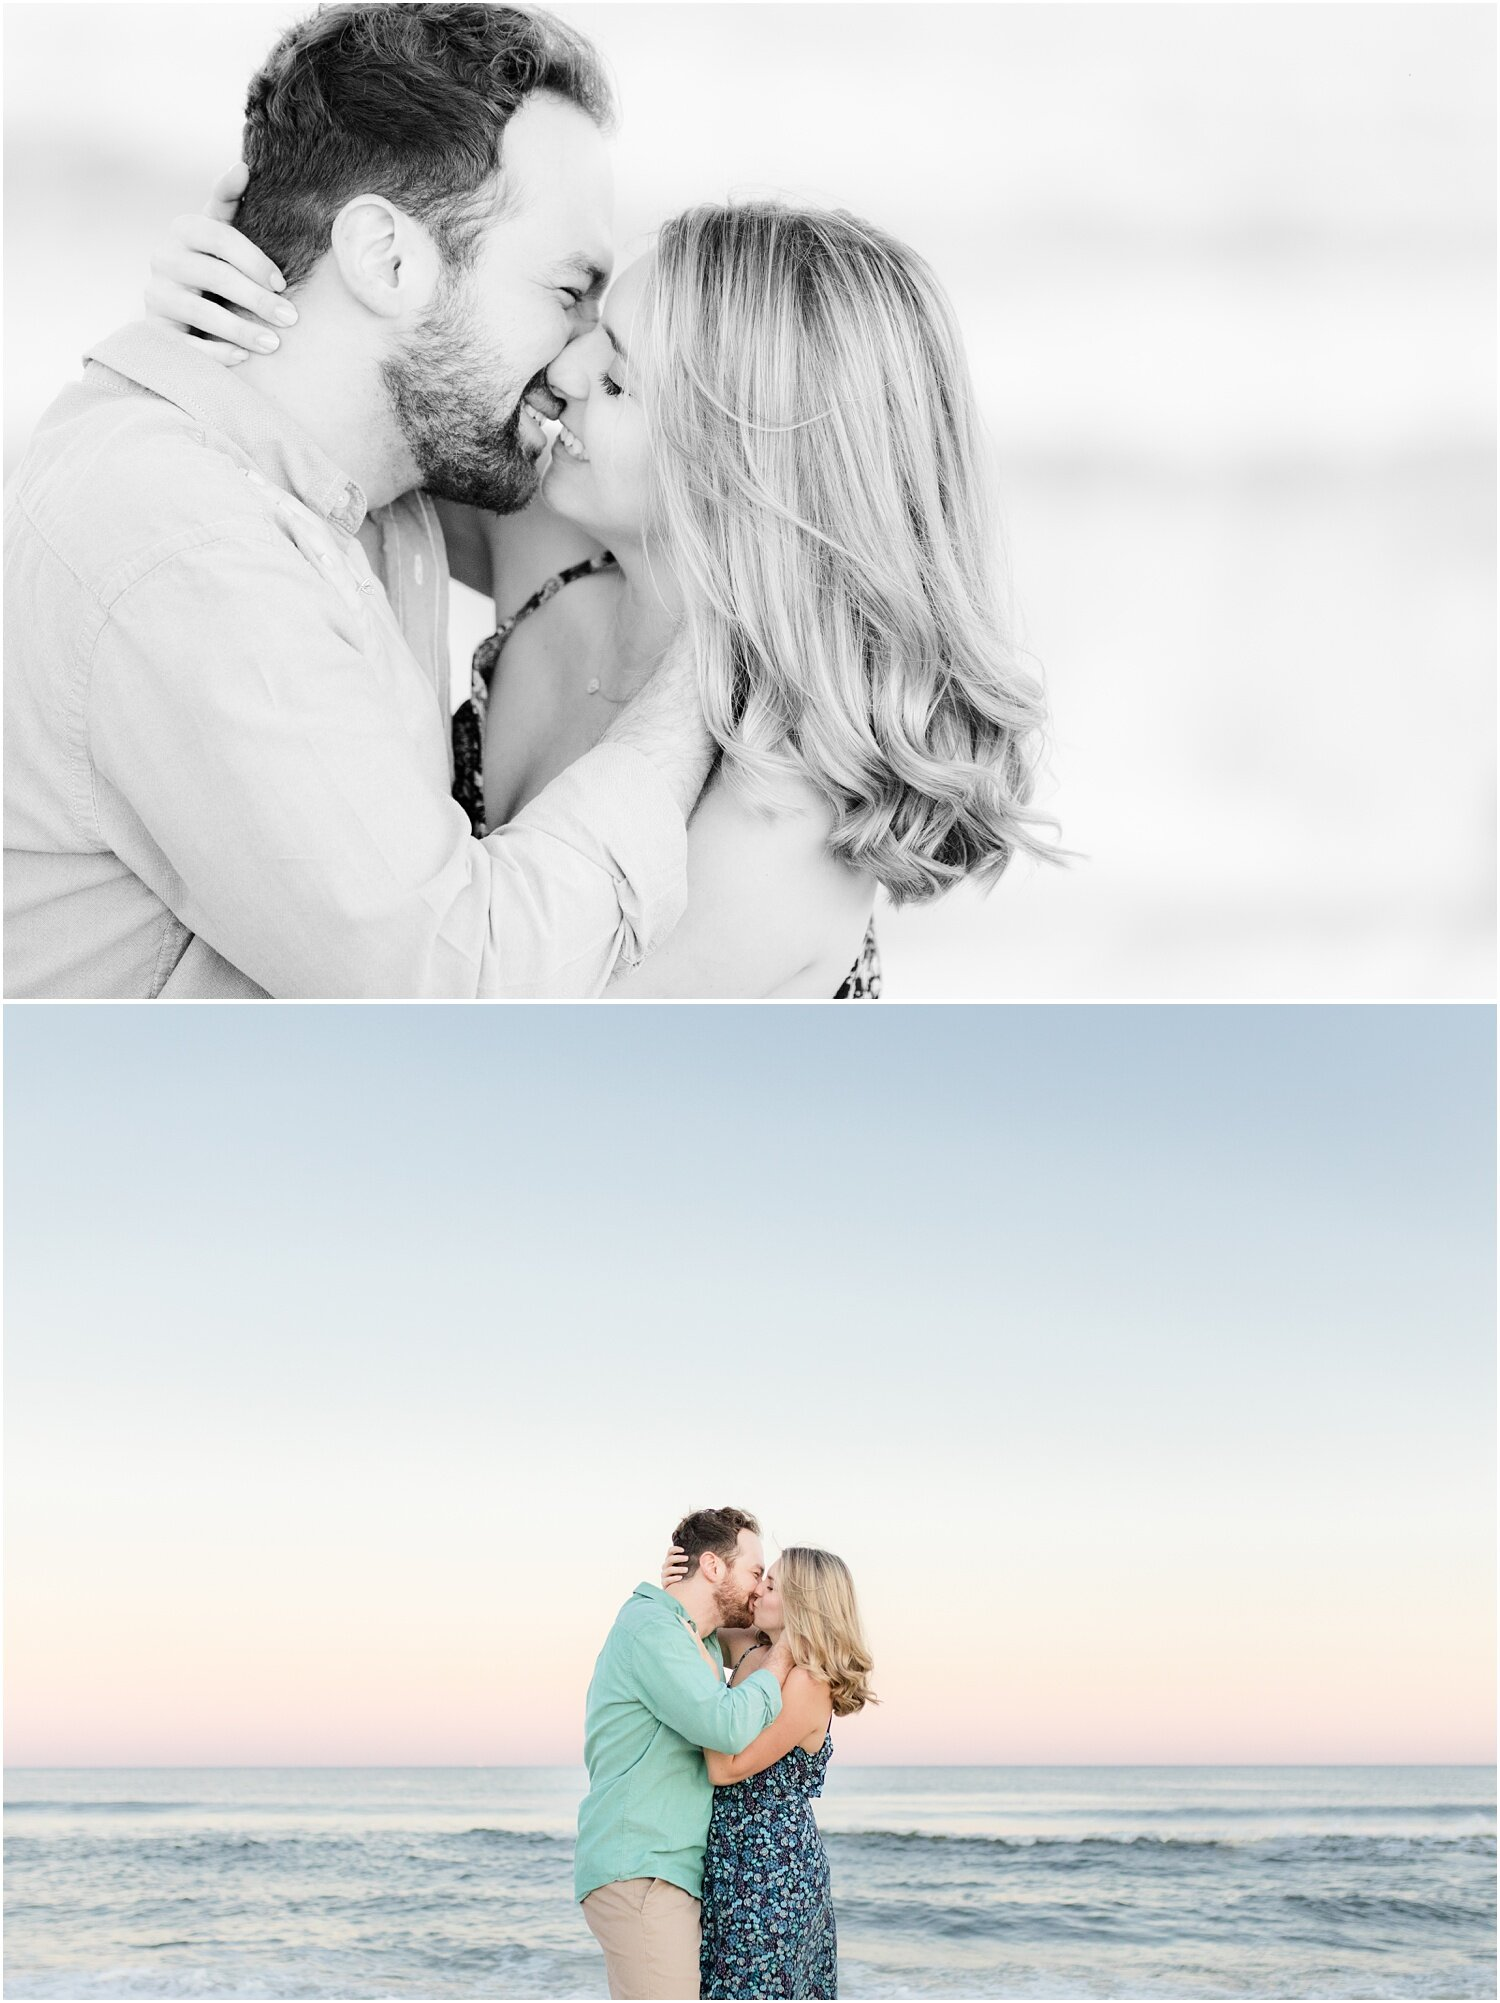 Romantic engagement photos on the beach in Spring Lake.